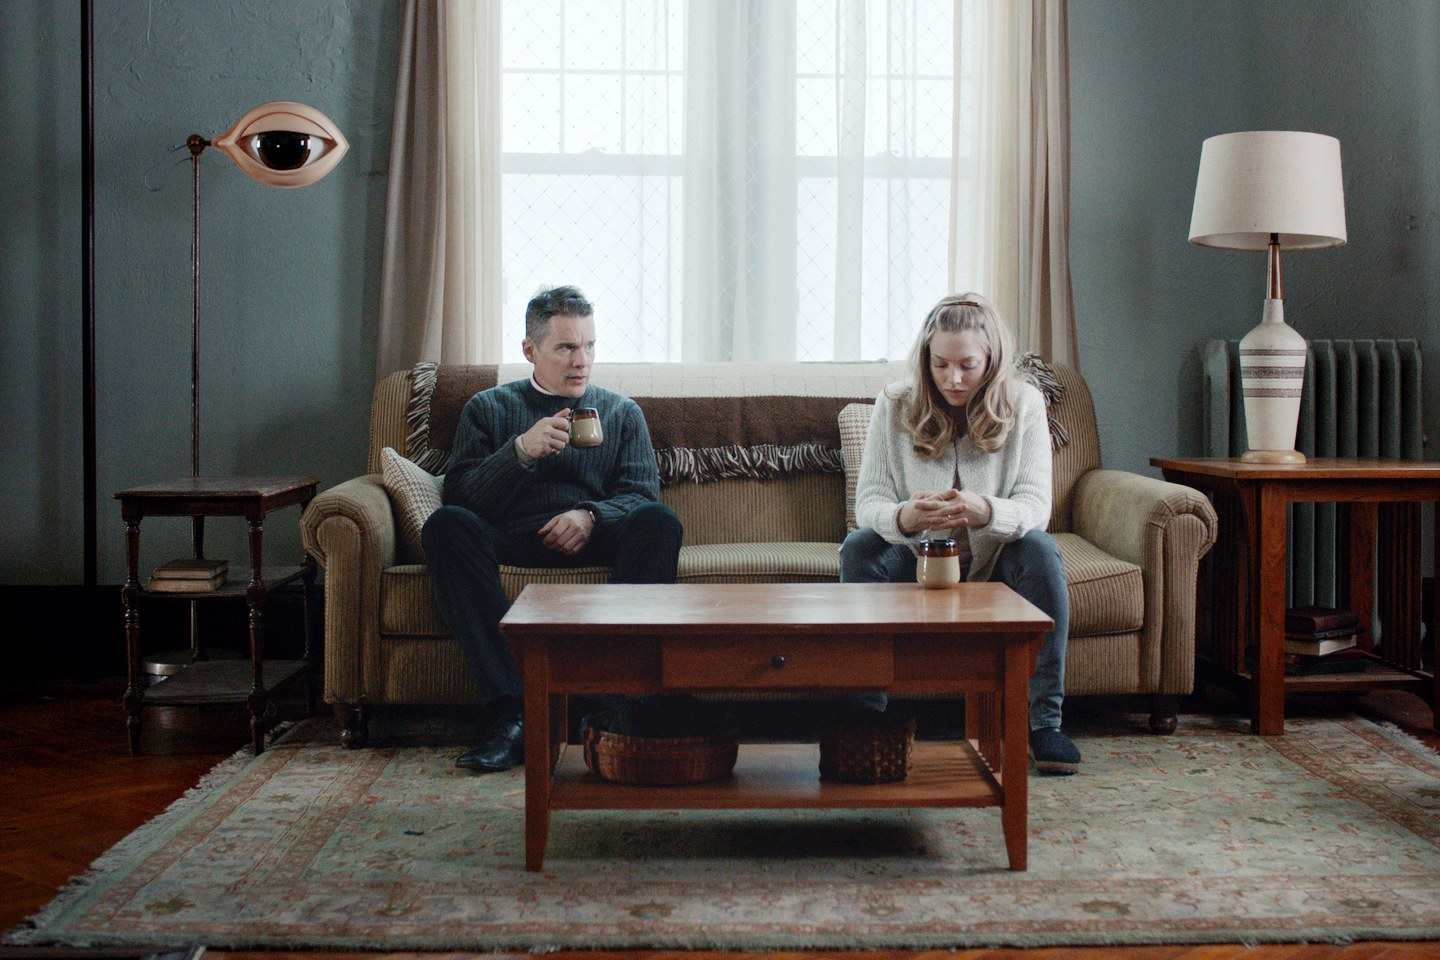 Ethan Hawke and Amanda Seyfried in Paul Schrader's First Reformed